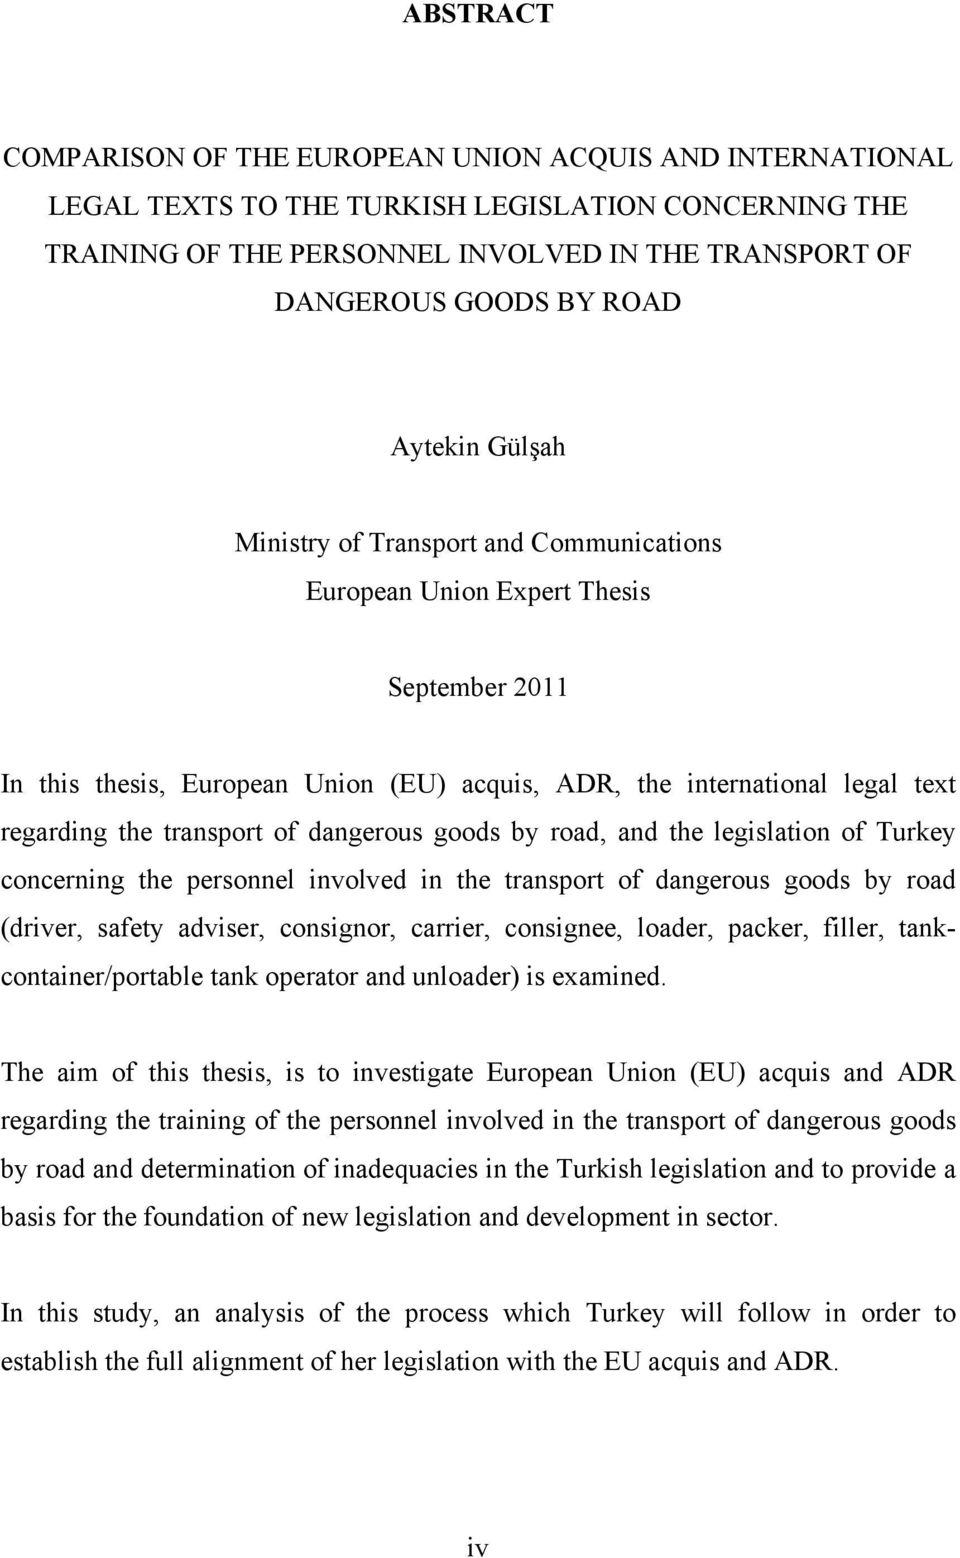 transport of dangerous goods by road, and the legislation of Turkey concerning the personnel involved in the transport of dangerous goods by road (driver, safety adviser, consignor, carrier,